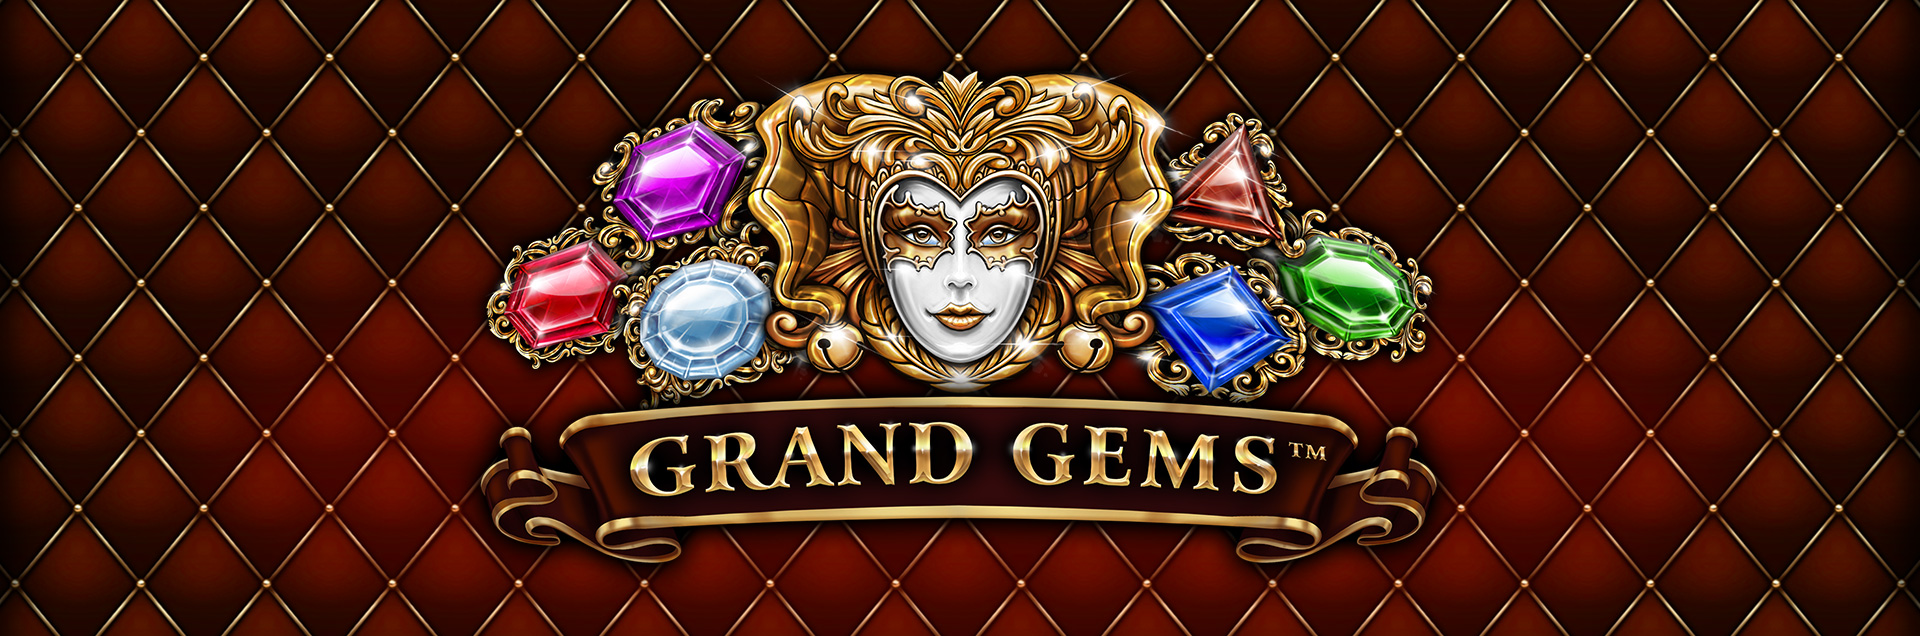 Grand Gems games header2